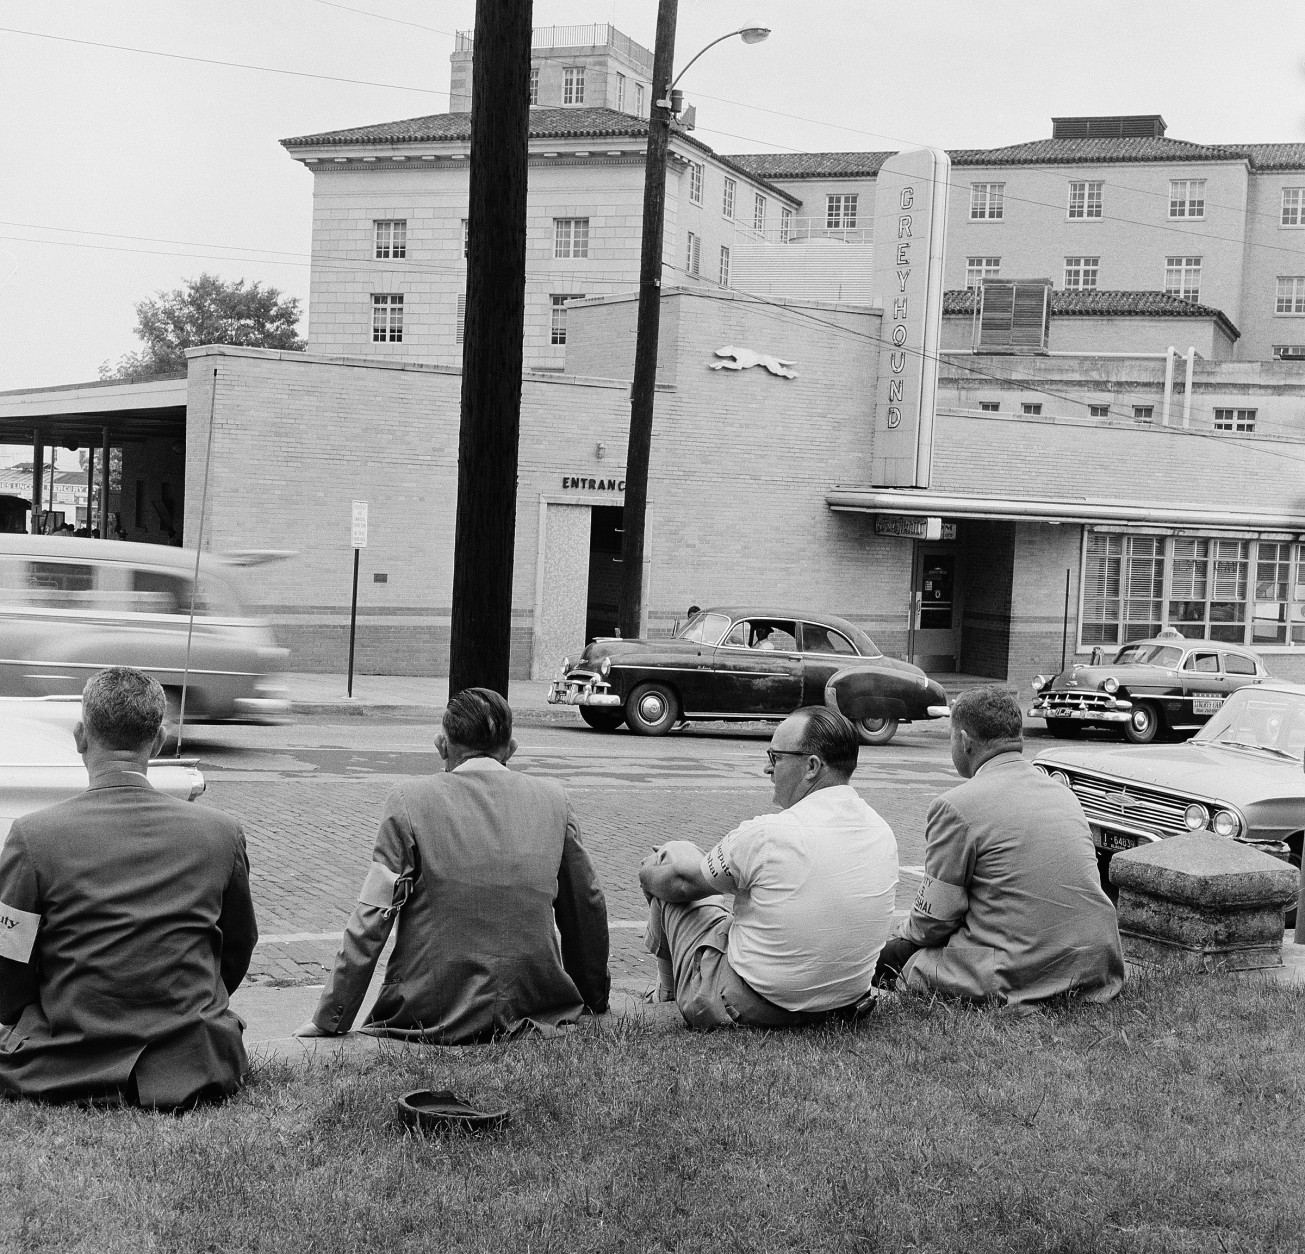 Federal marshals, wearing bright yellow arm bands, keep an eye on the bus station after a band of freedom riders were beaten by a mob when they arrived from Birmingham the previous day, May 21, 1961, Montgomery, Ala. (AP Photo/Horace Cort)